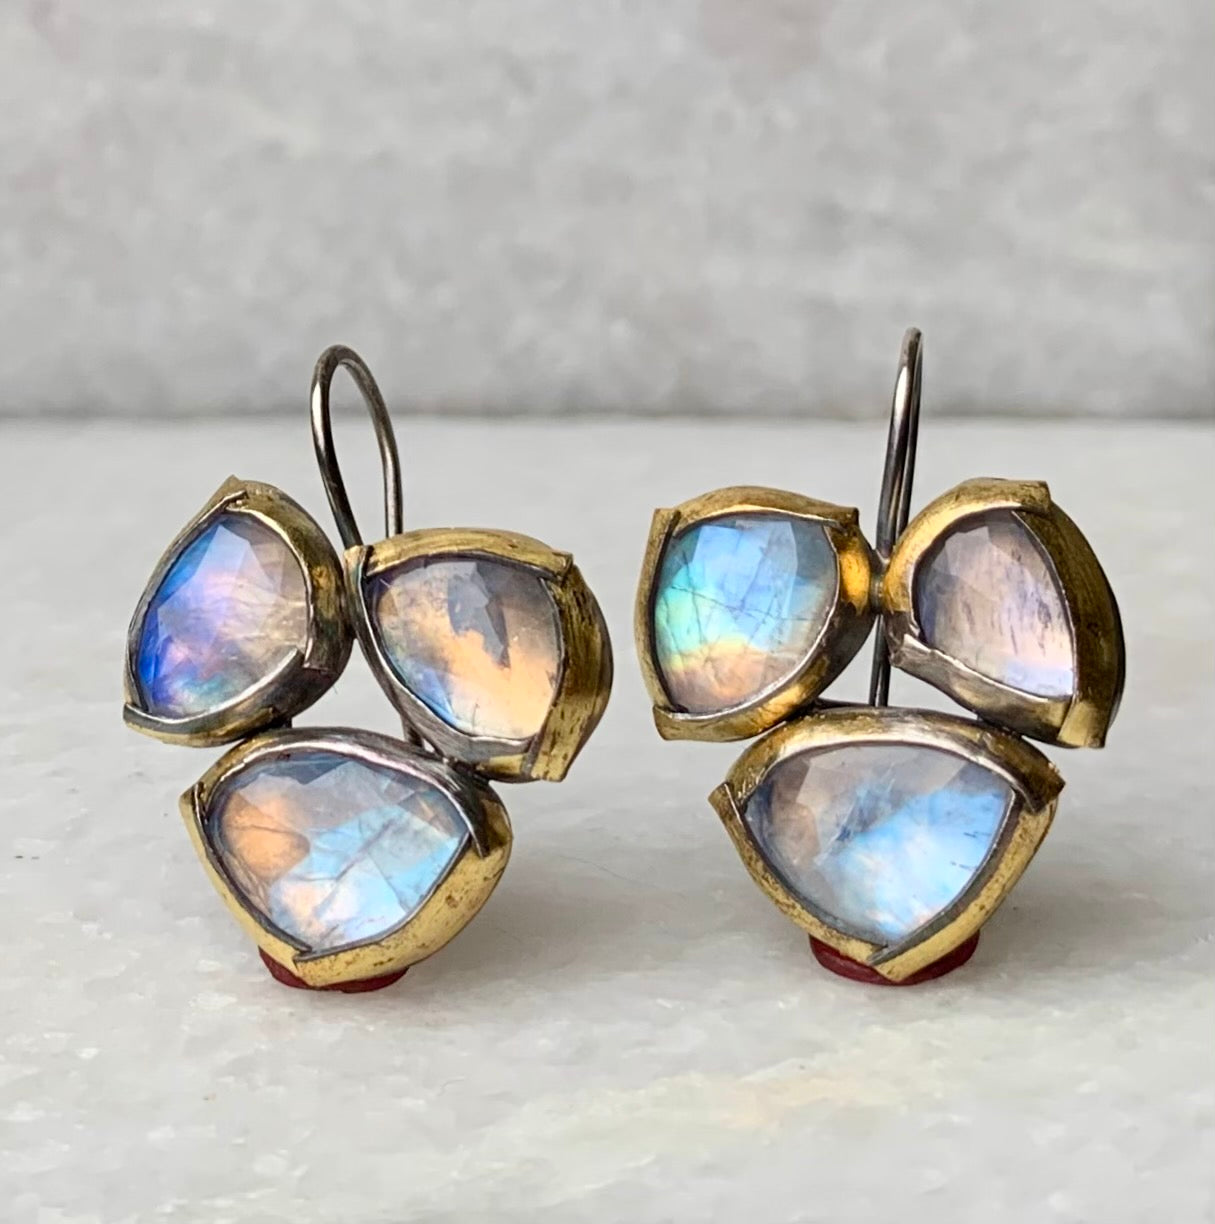 Fold Trio Earrings with Moonstones